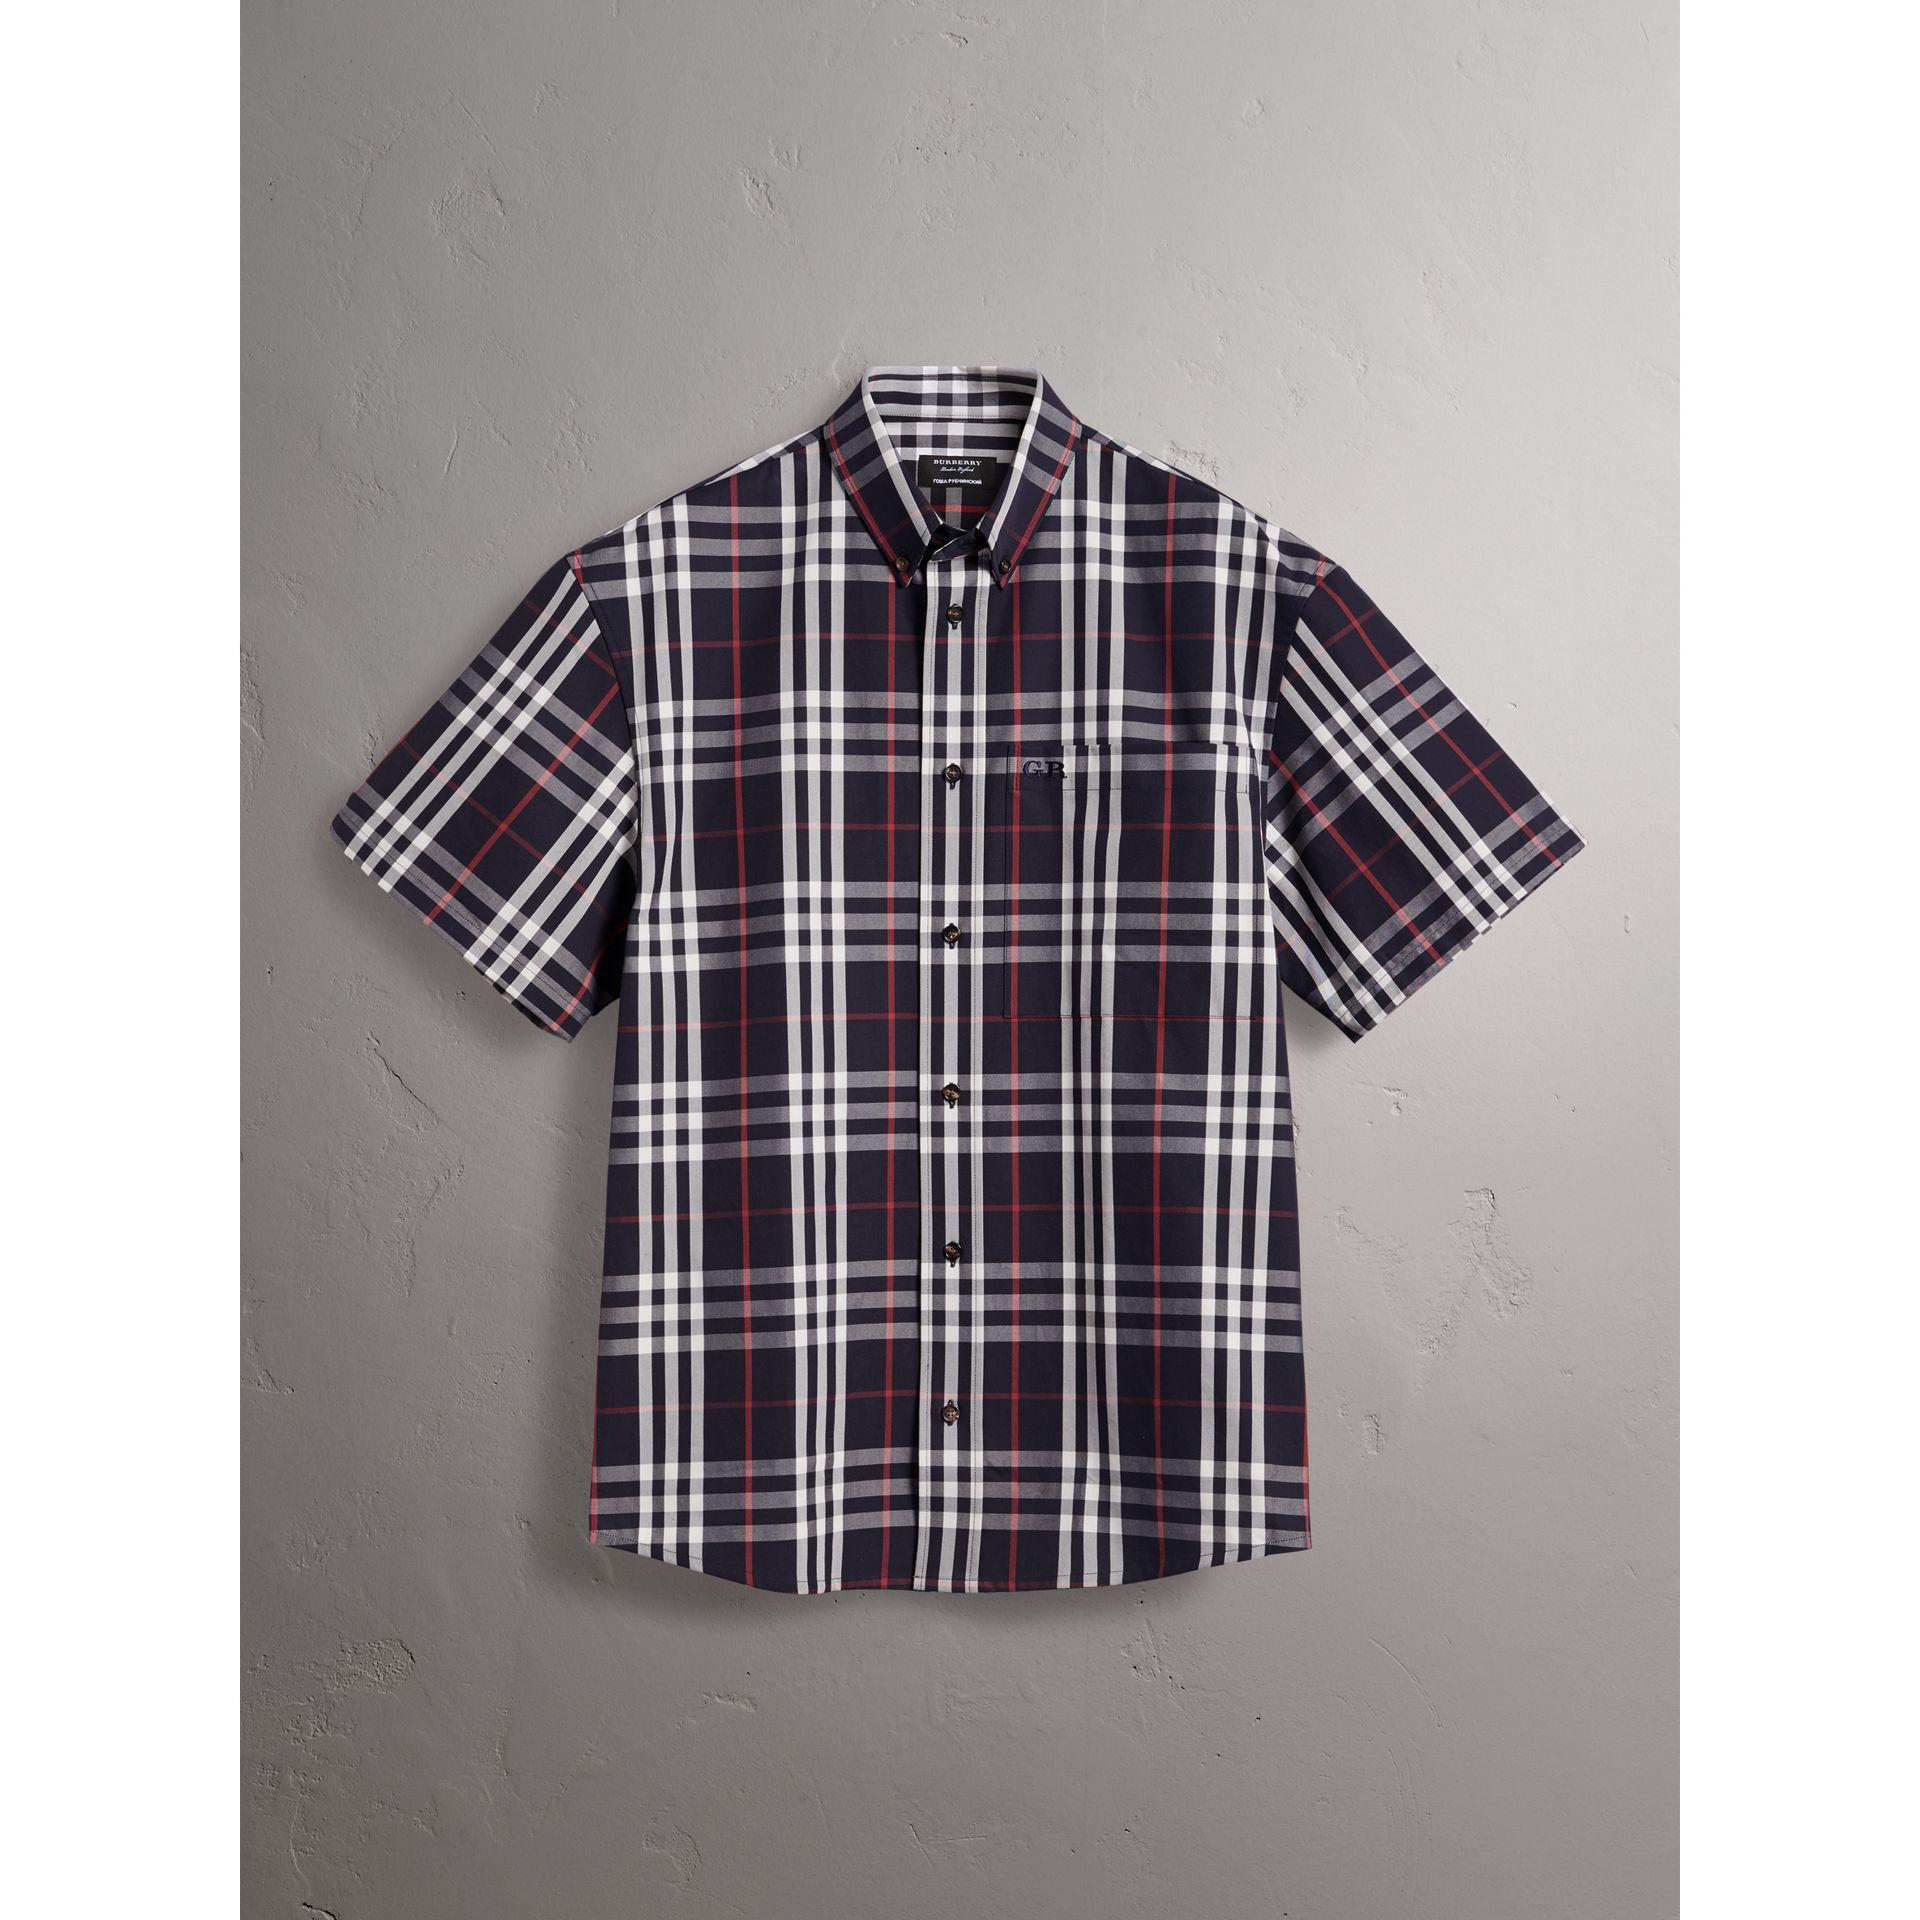 Gosha x Burberry Short-sleeve Check Shirt in Navy | Burberry United Kingdom - gallery image 4